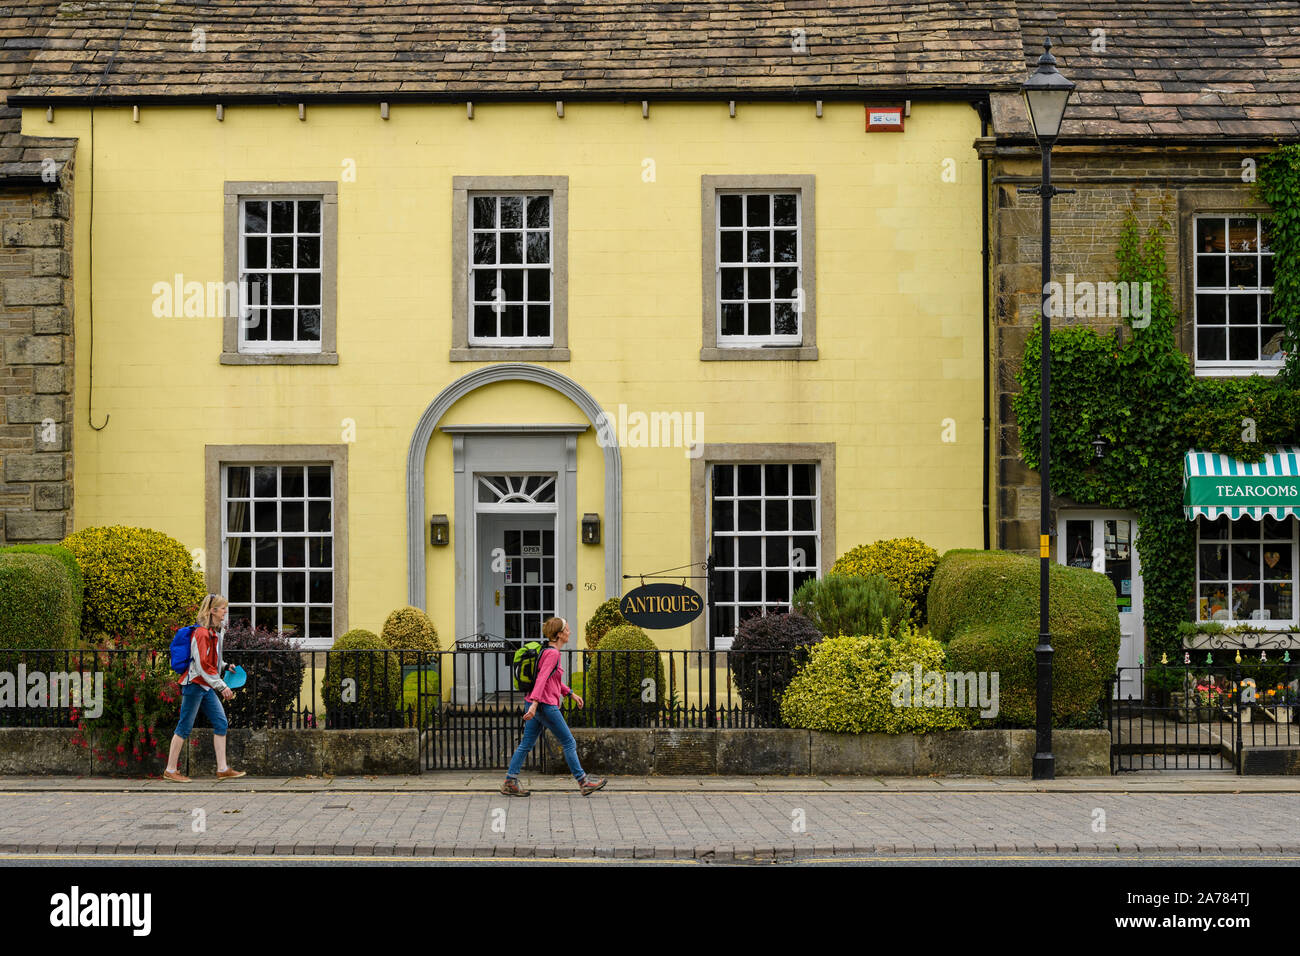 2 women walk past exterior of attractive antiques shop (Georgian building) & Dalesman Café Tearoom - village of Gargrave, North Yorkshire, England, UK Stock Photo